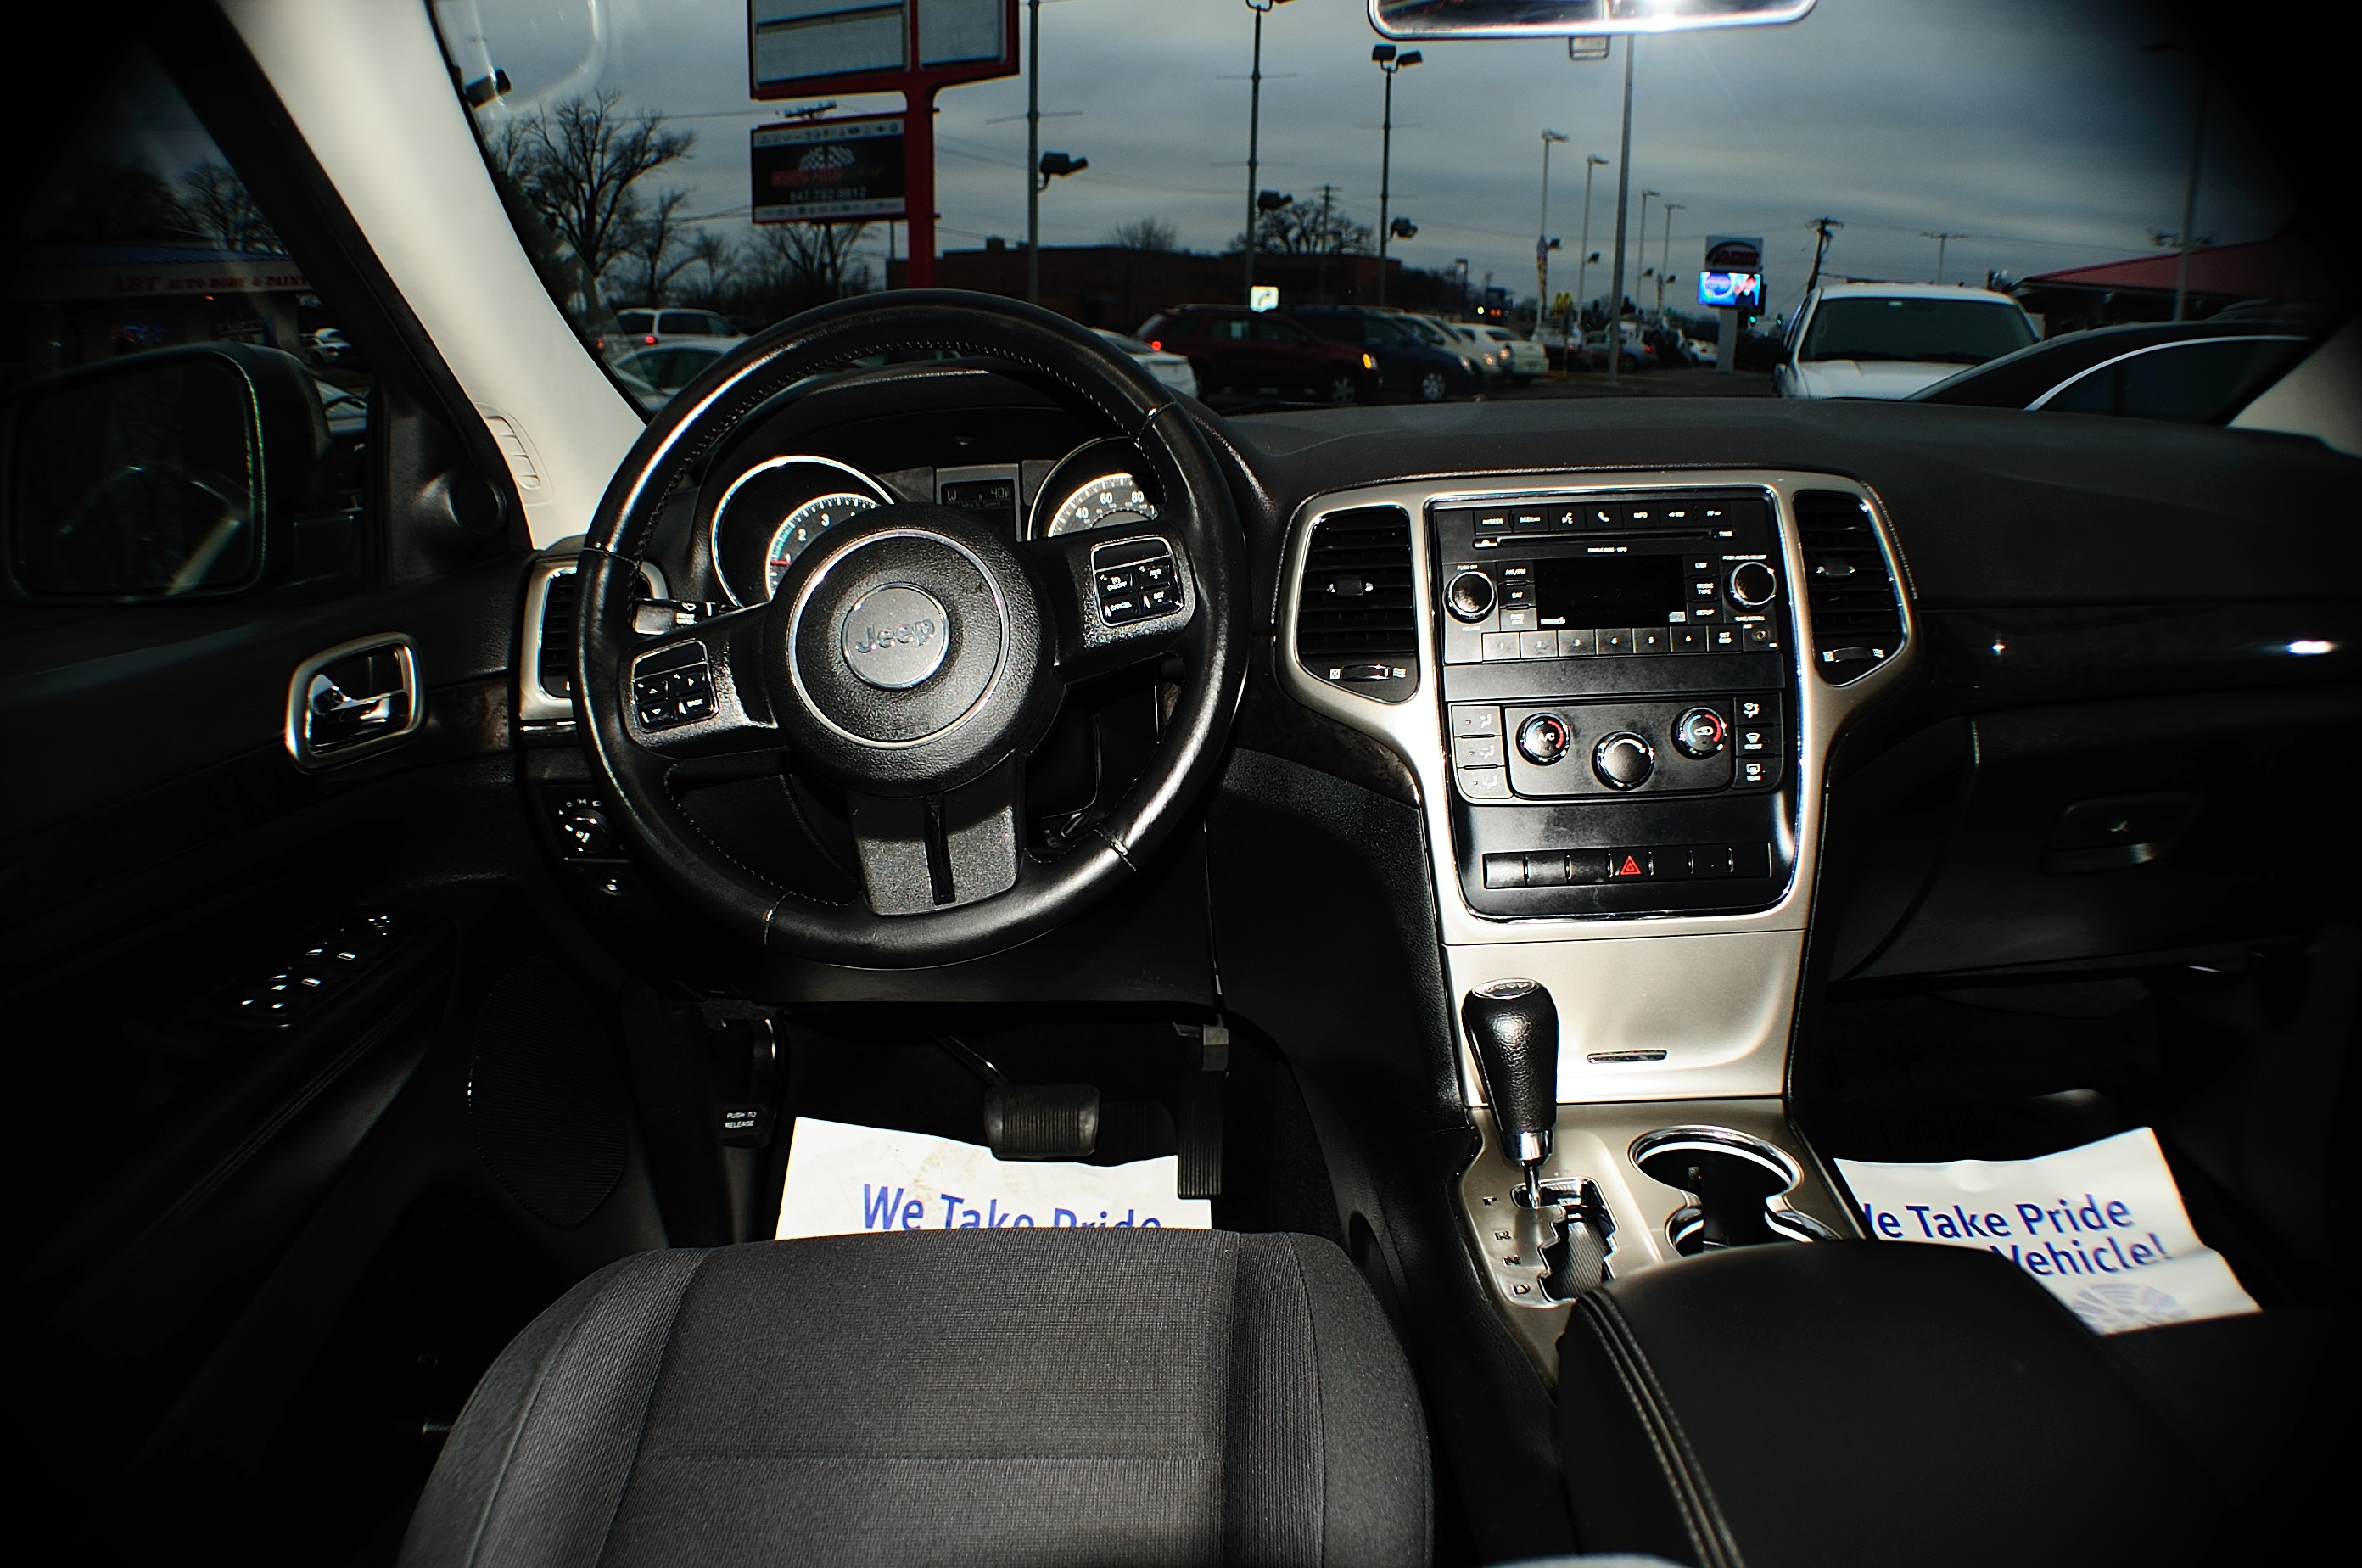 2011 Jeep Grand Cherokee Green used 4x4 SUV Sale Green Oaks Hainesville Hawthorne Woods